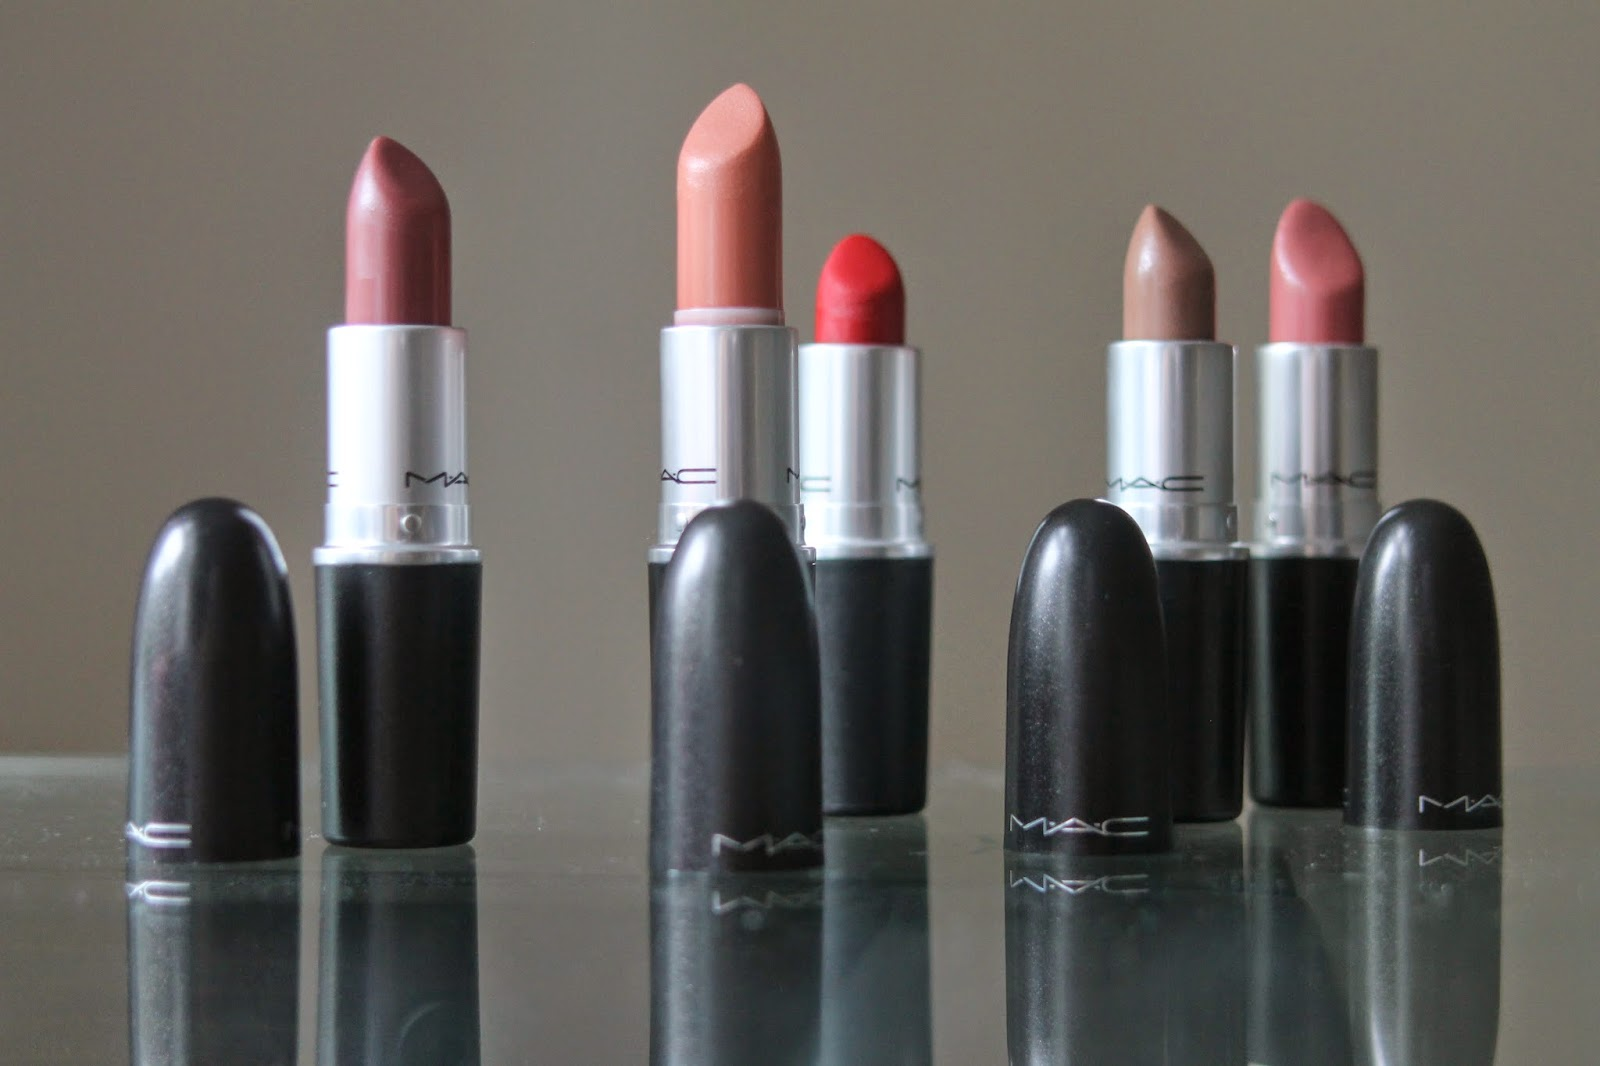 MY TOP FIVE MAC LIPSTICKS